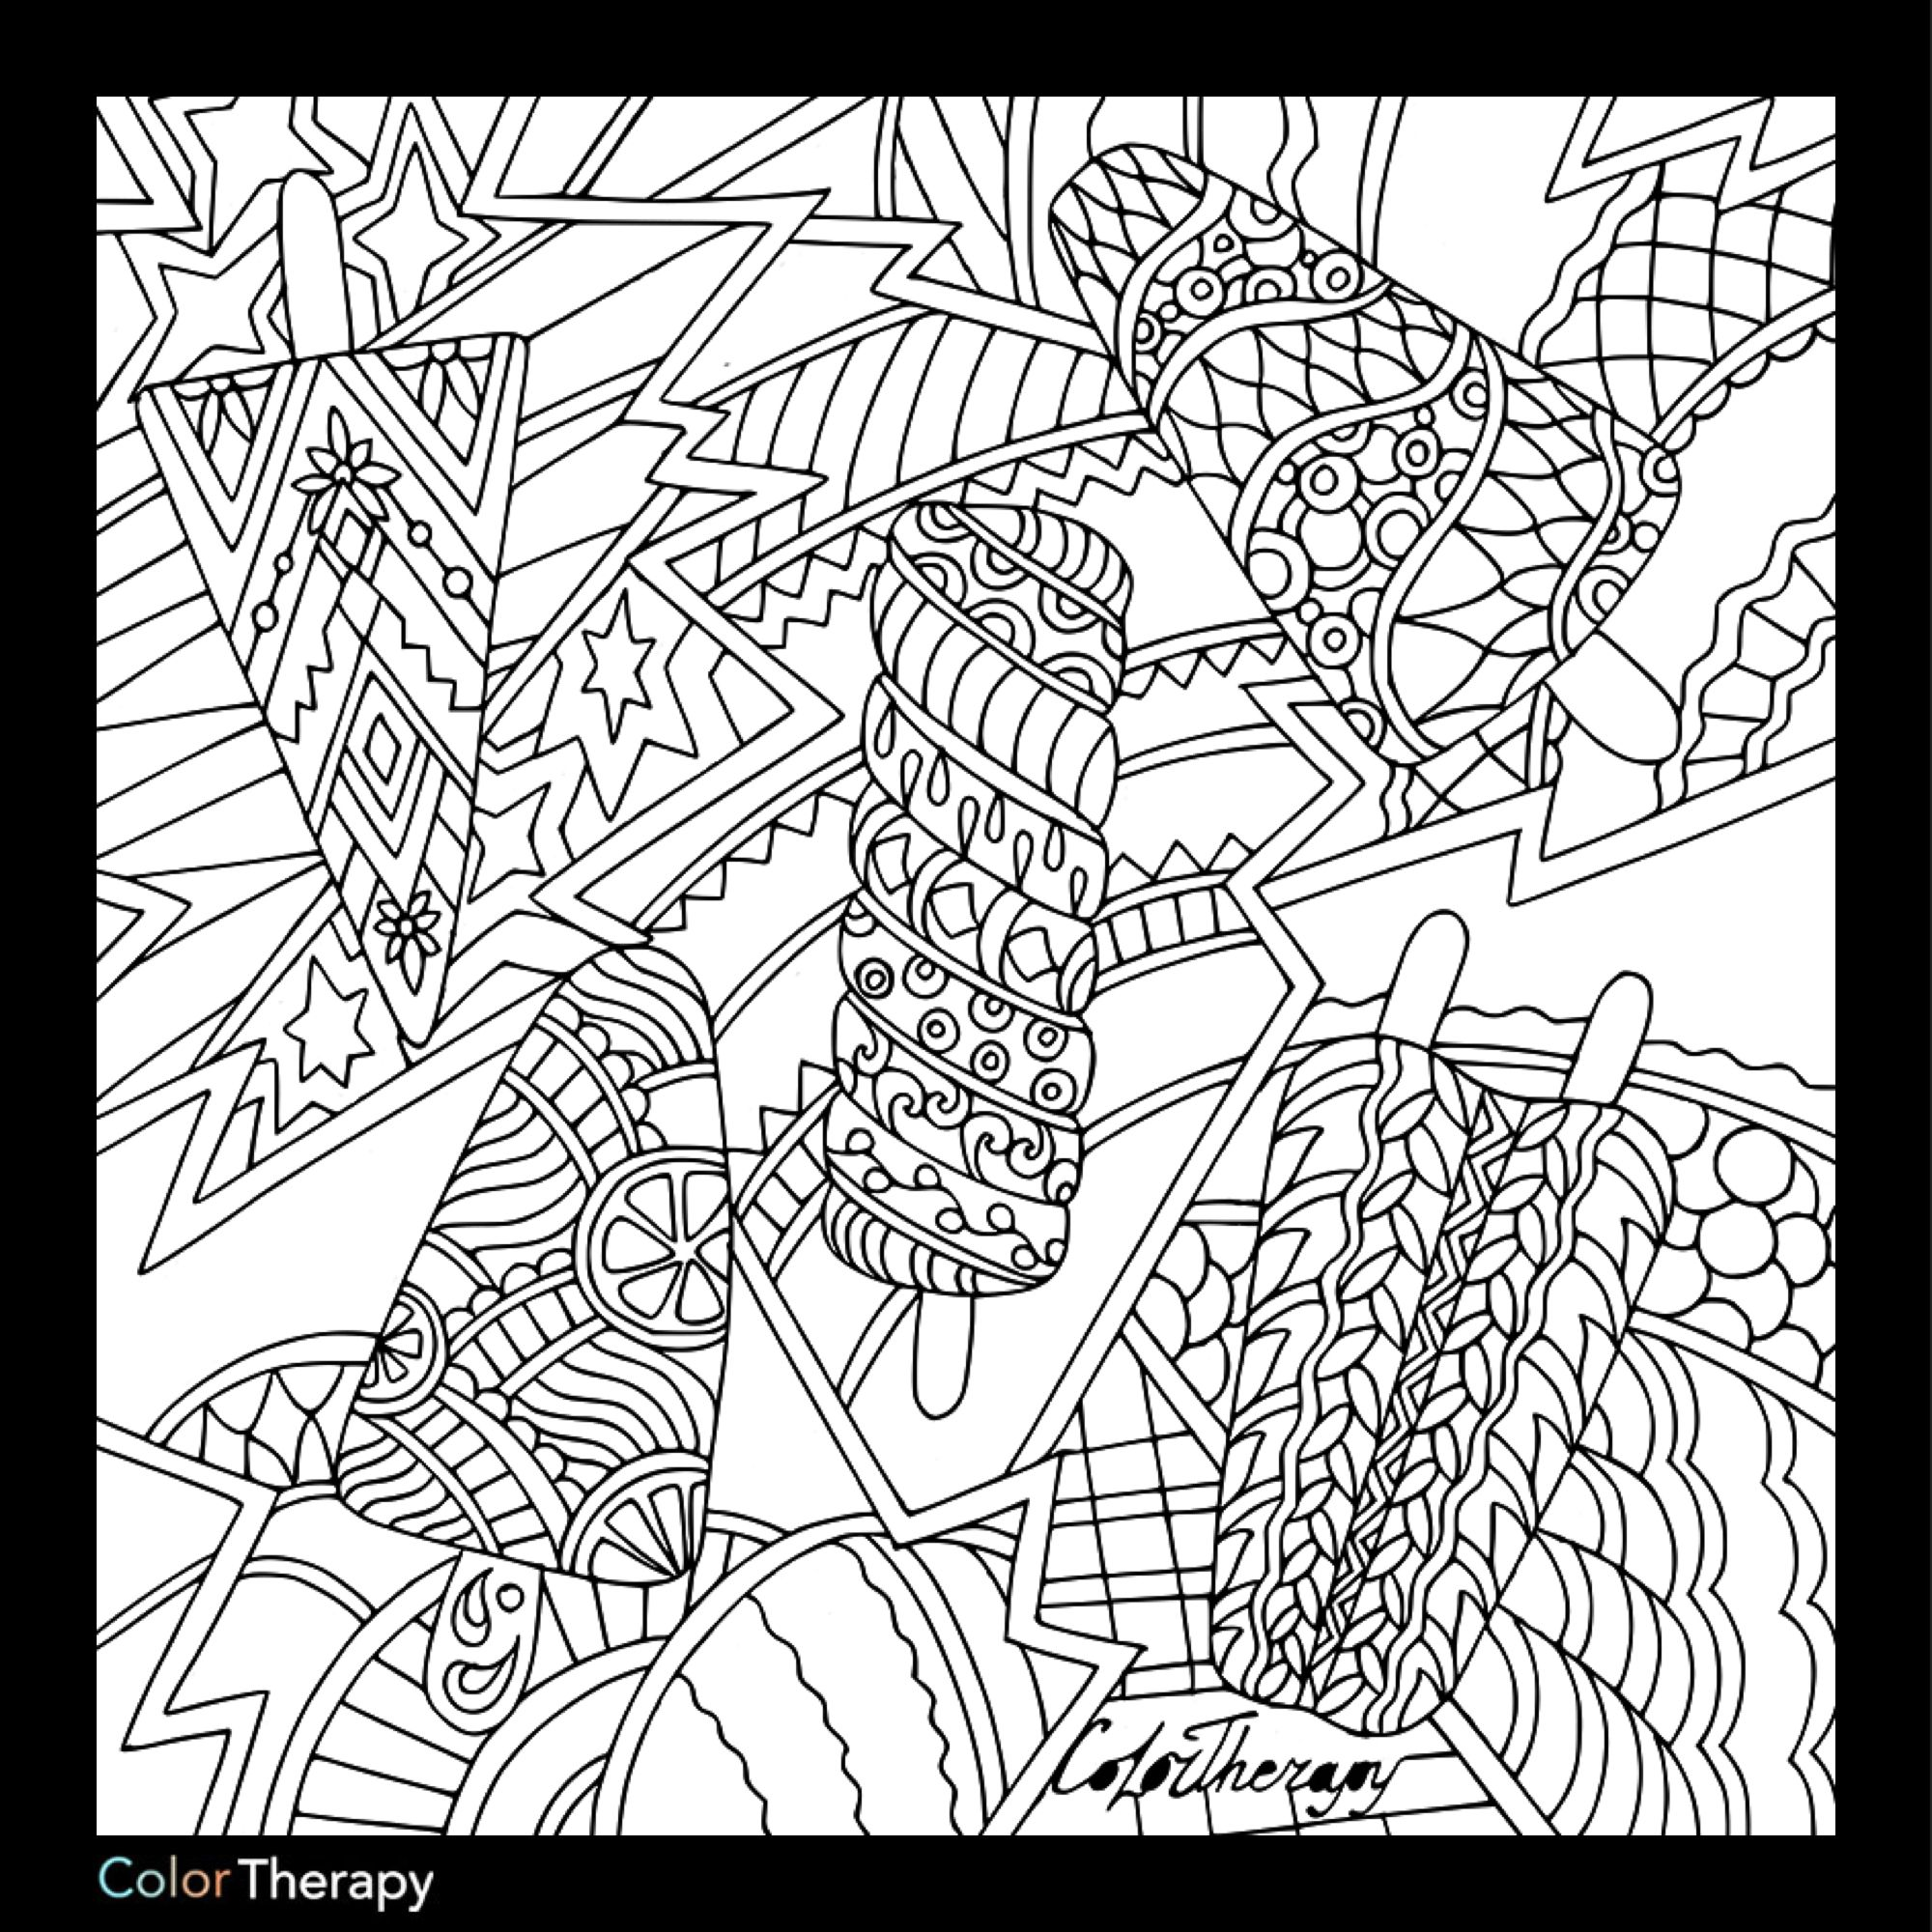 I Colored This Myself Using Color Therapy App It Was So Fun And Relaxing And It S Free Cute Coloring Pages Color Therapy App Free Coloring Pages